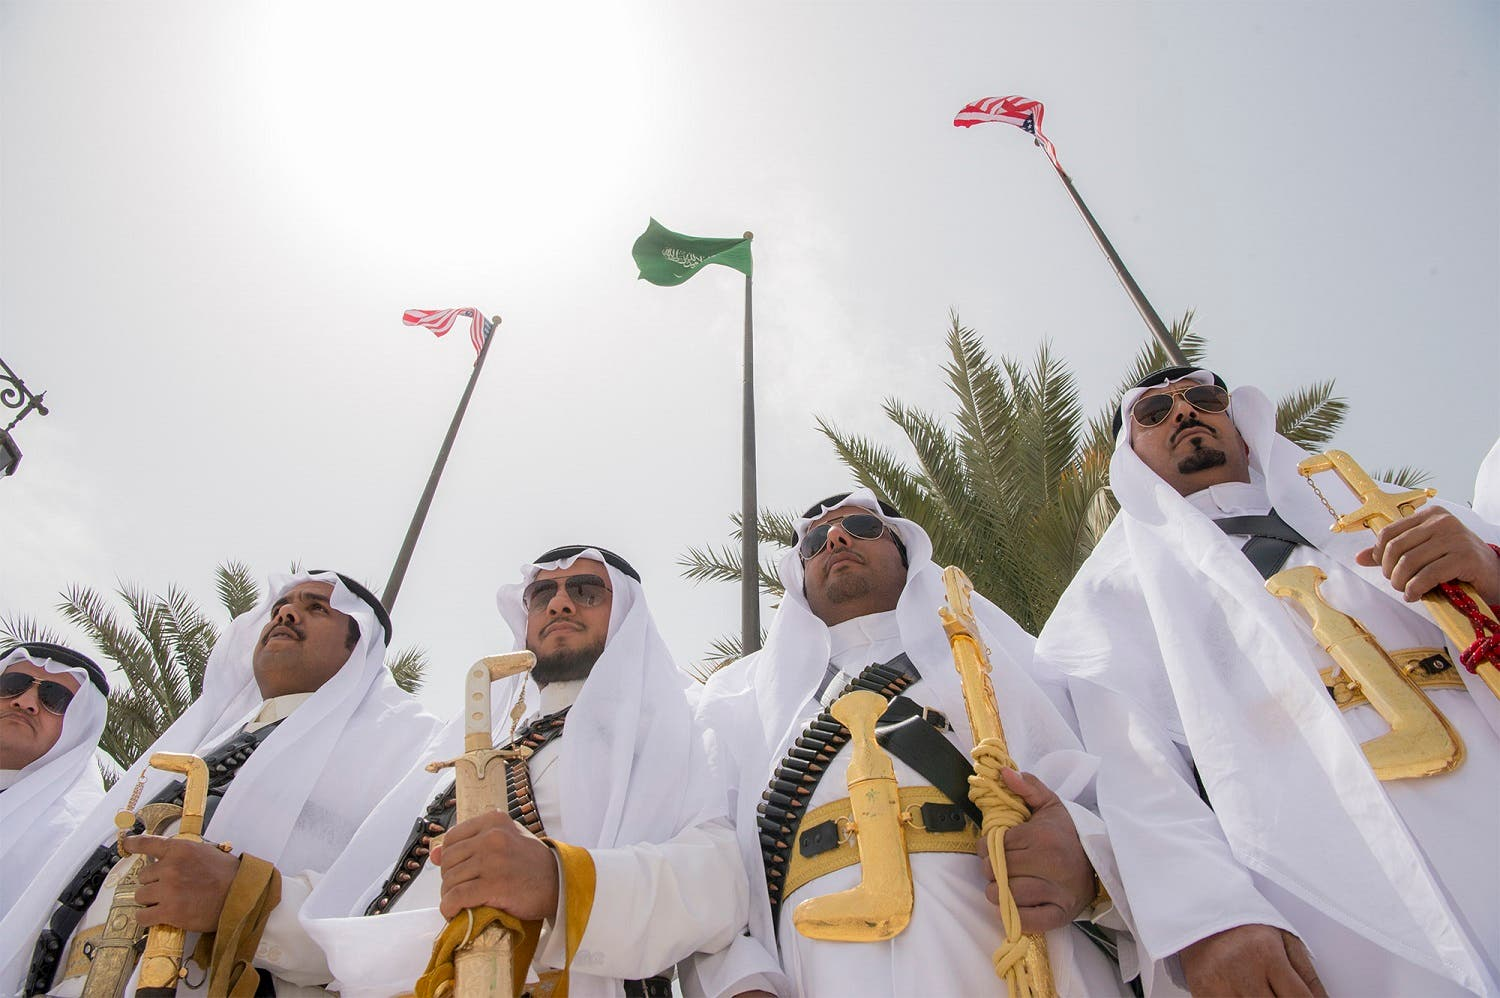 The Royal Guards or 'Al-Lakhawiya' as they are called in Arabic, is an ancient tradition mentioned during the reign of King Abdul Aziz, and was established in 1925, with military functions. (Supplied)